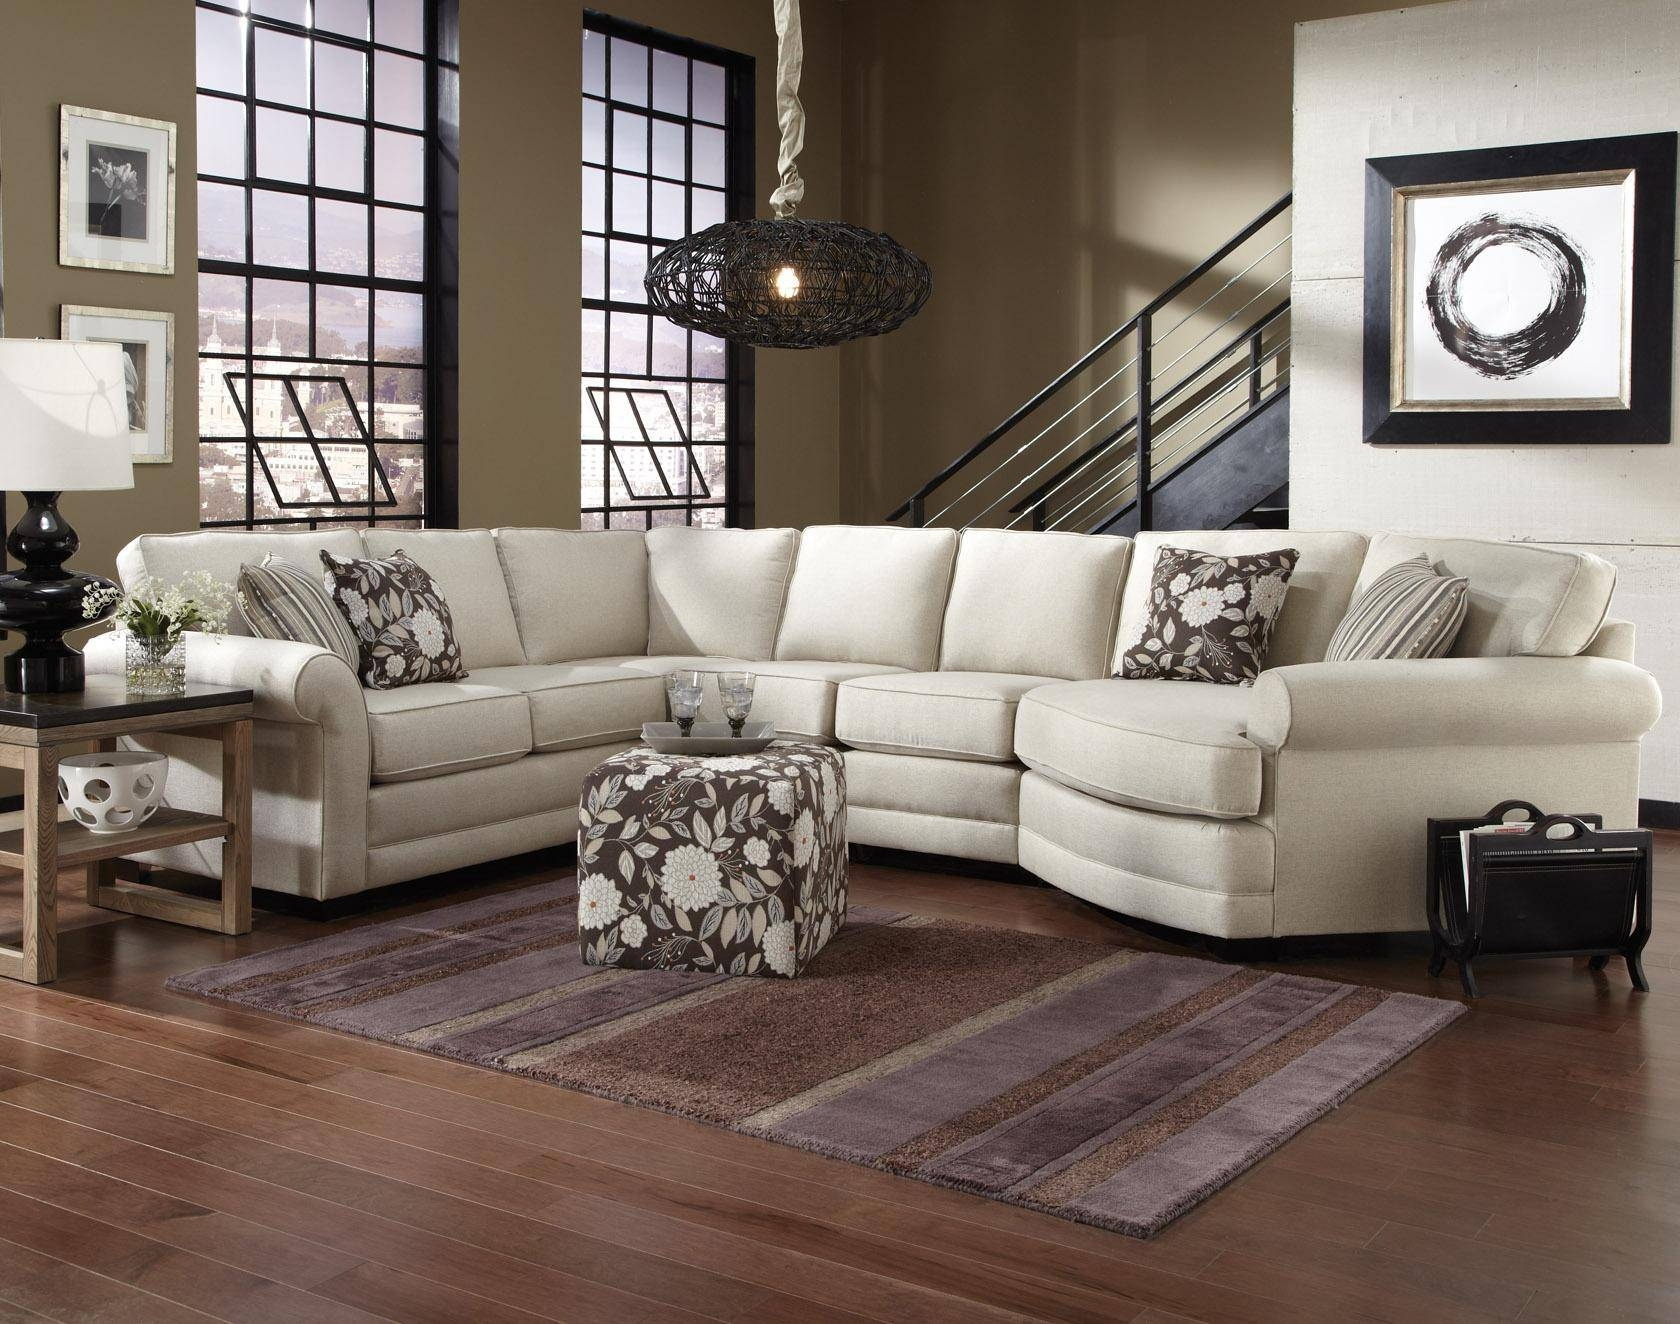 England Brantley 5 Seat Sectional Sofa With Cuddler – Dunk Intended For Cuddler Sectional Sofa (View 12 of 30)